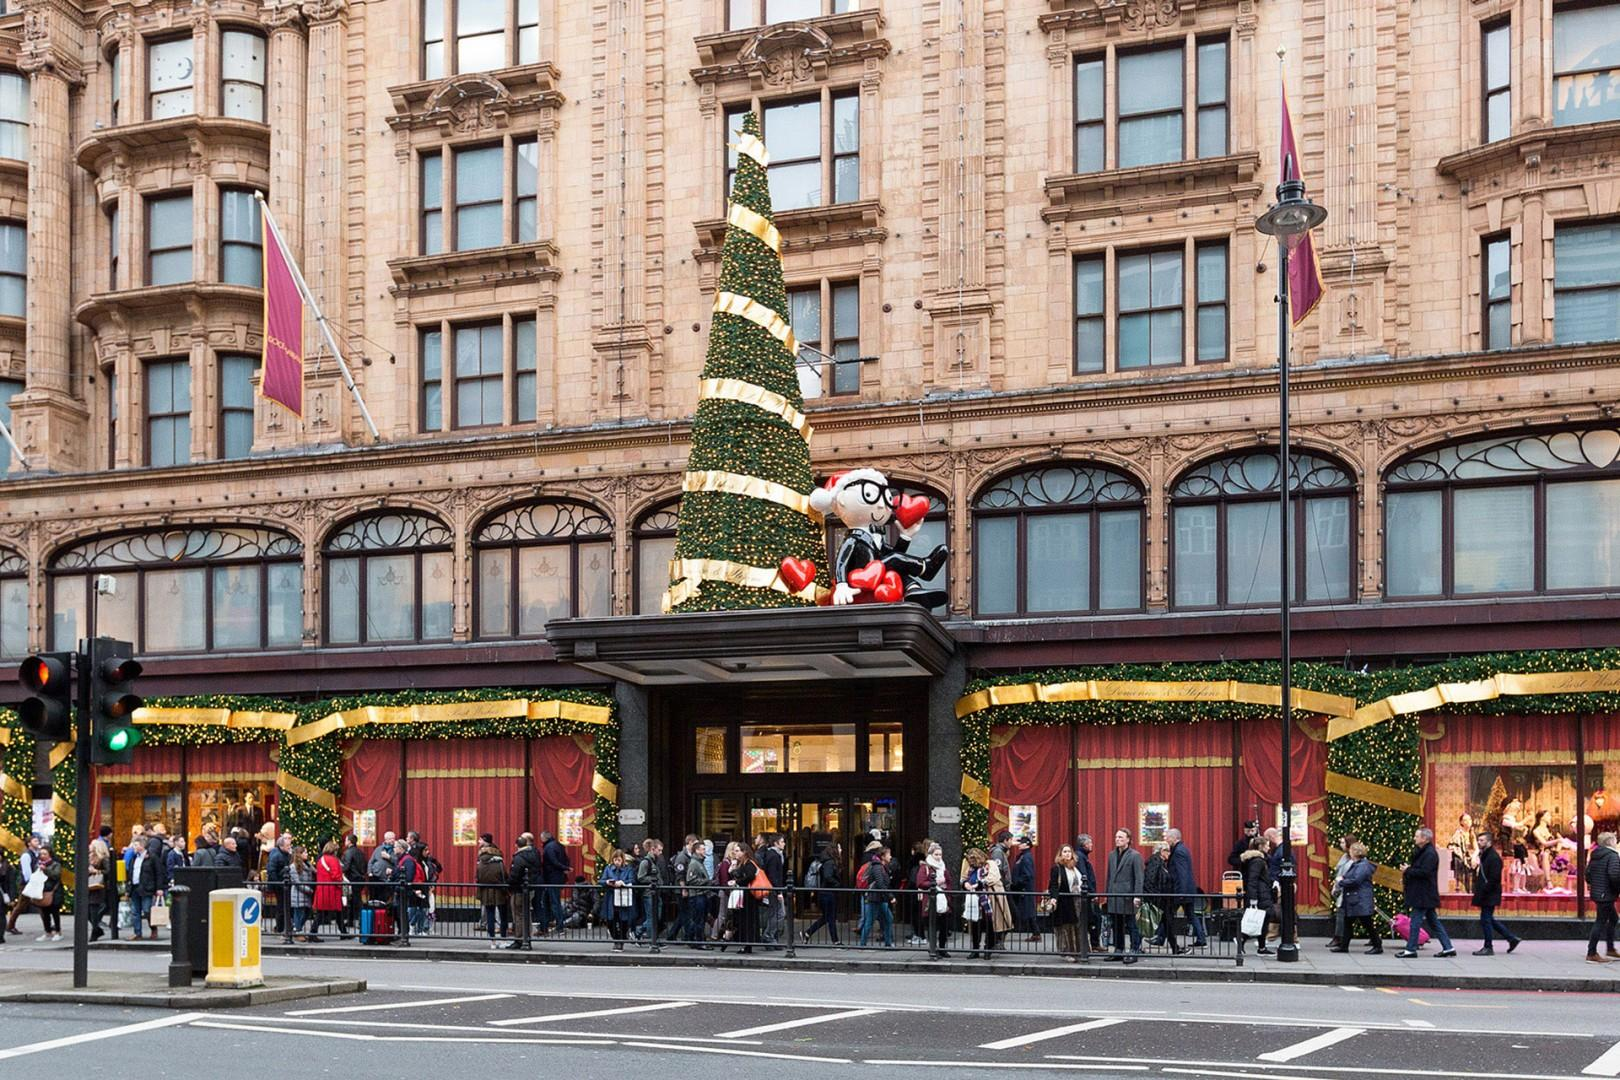 CMS-21-(A stone's throw from the famous Harrod's department store)-knightsbridge-26